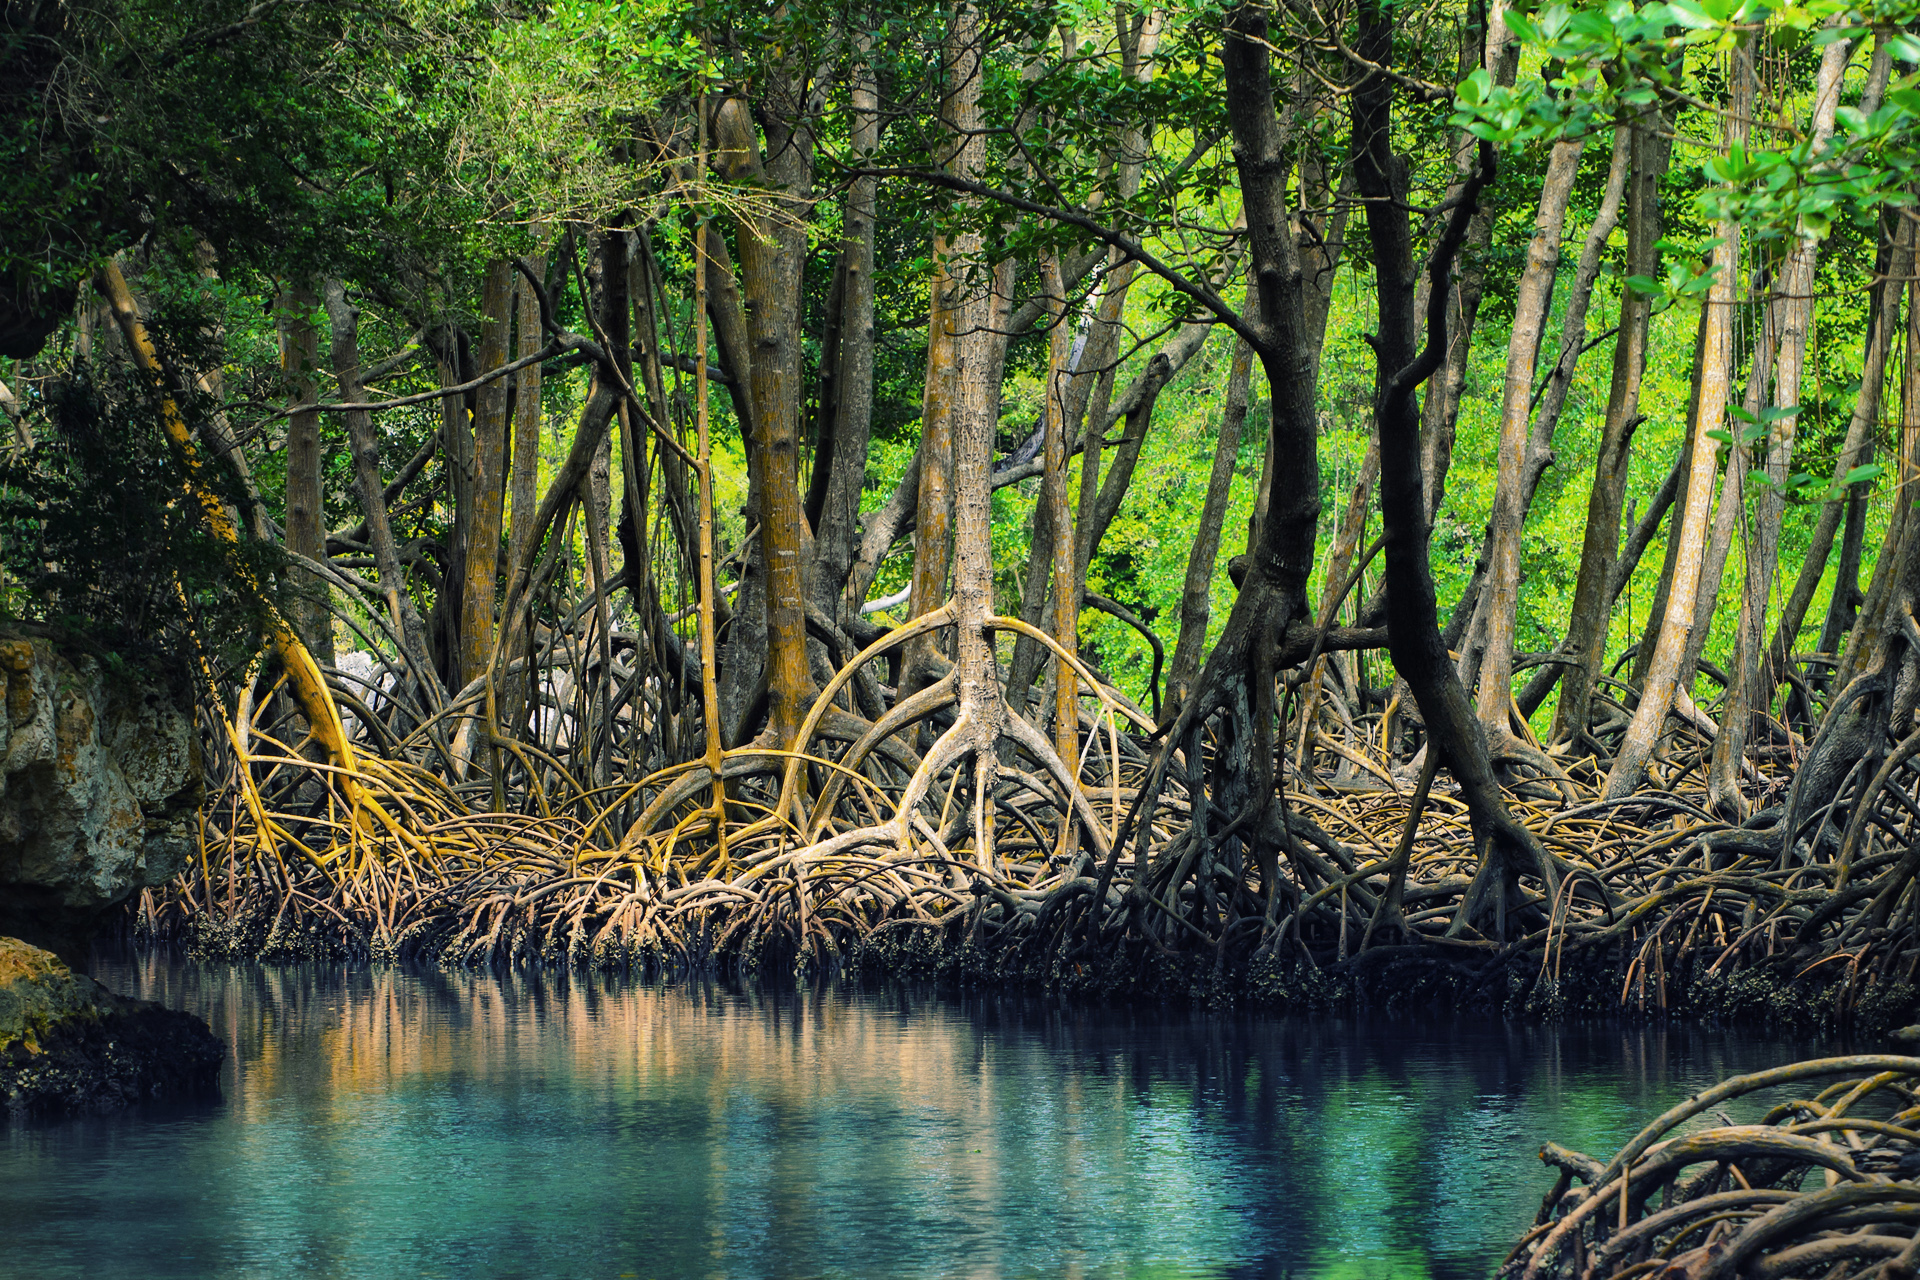 Dominican_republic_Los_Haitises_mangroves-deleted-3a0414f2fa1a4b1def31dcbed956120f